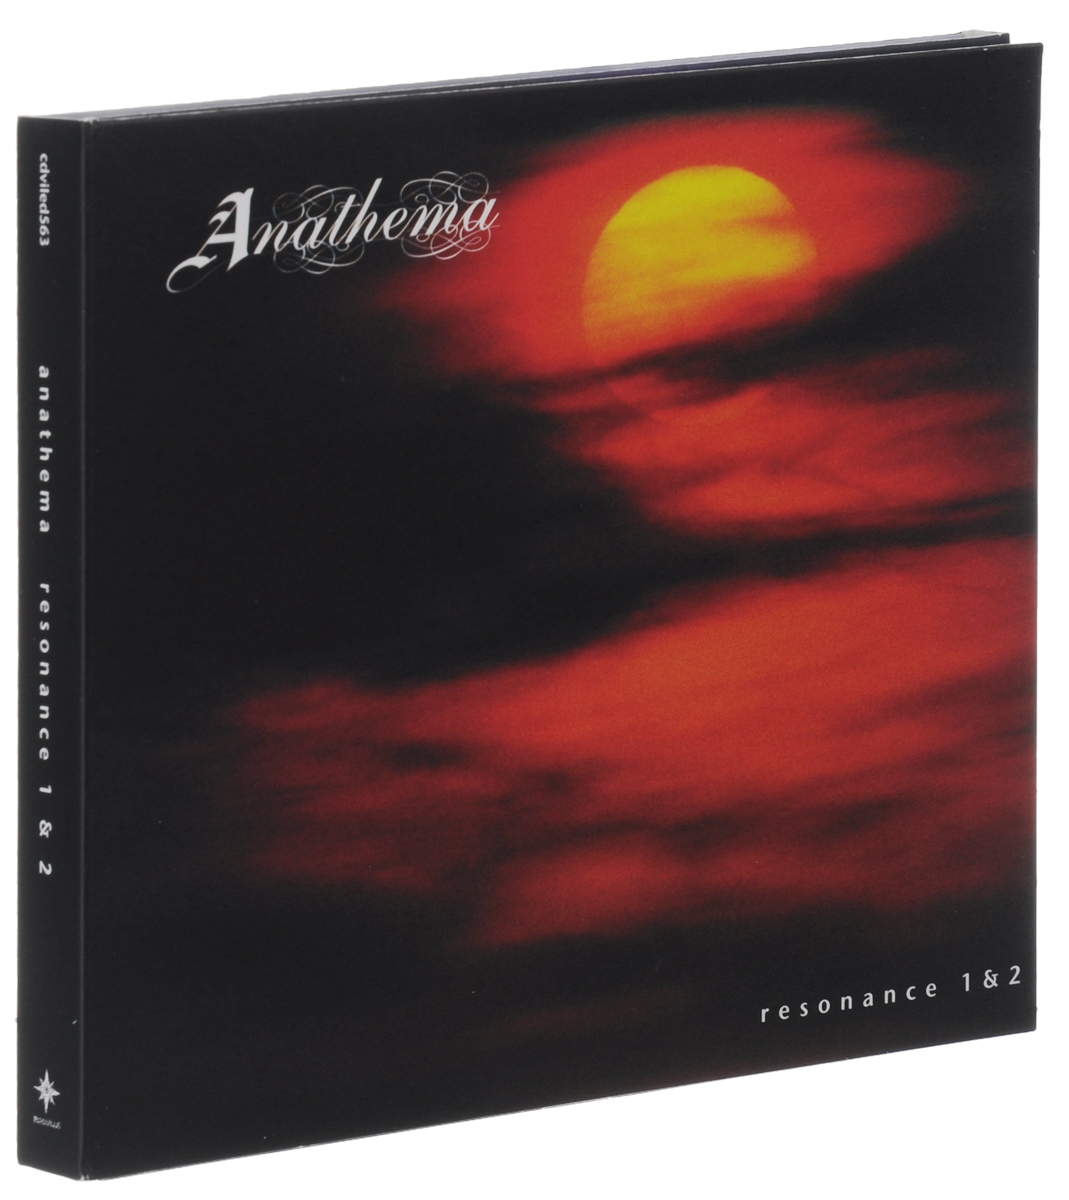 Anathema Anathema. Resonance 1 & 2 (2 CD) 2200mmx1900mm hot tub spa cover leather skin can do any other size